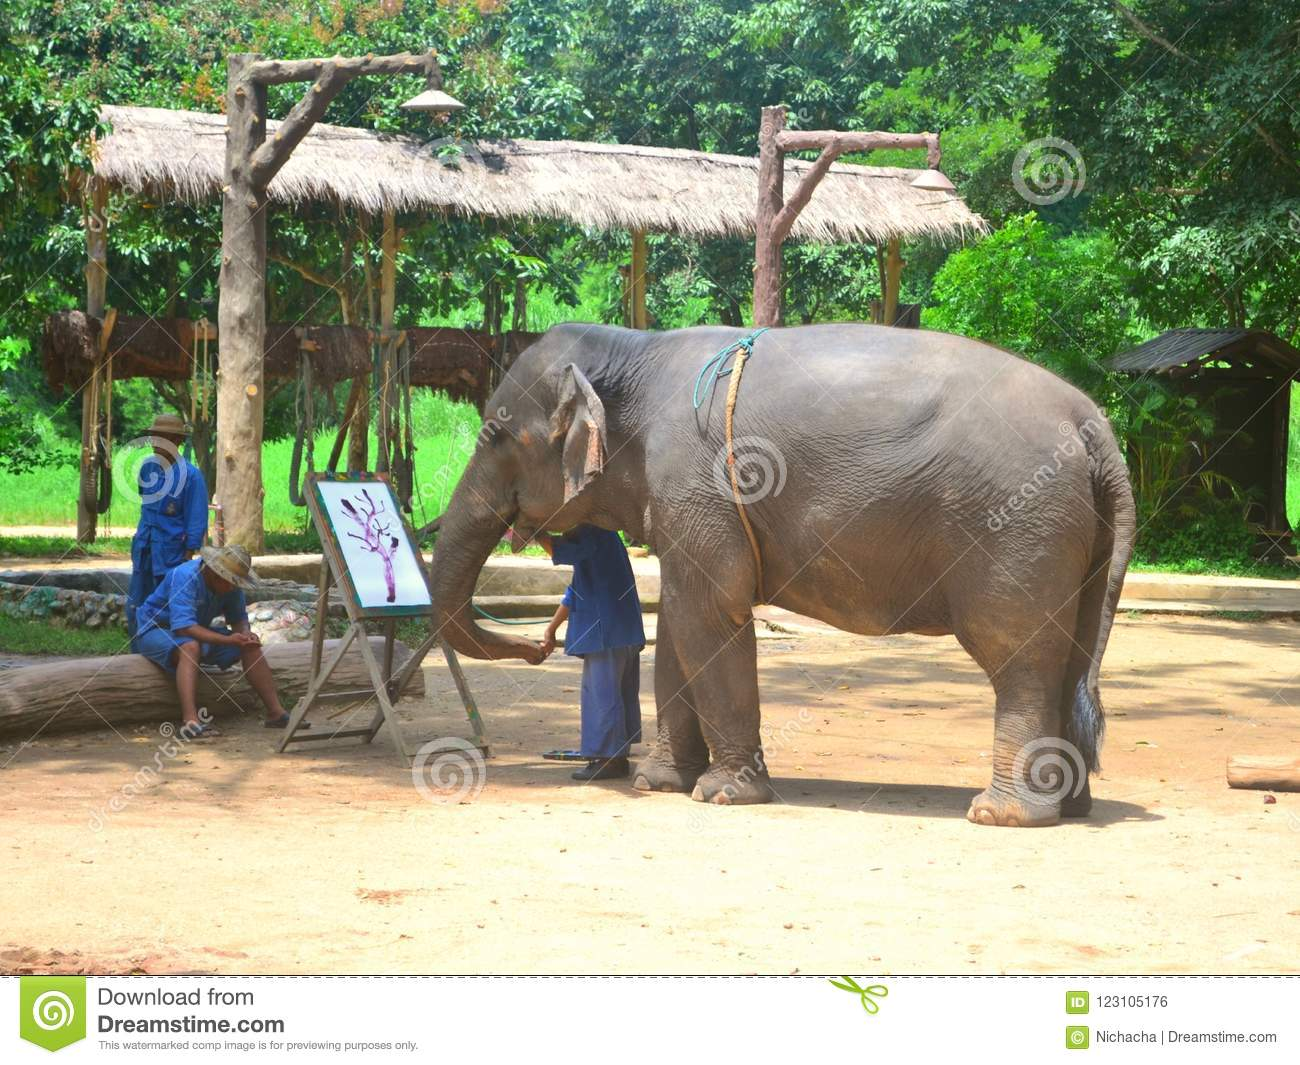 The Elephant And Mahout In The Show